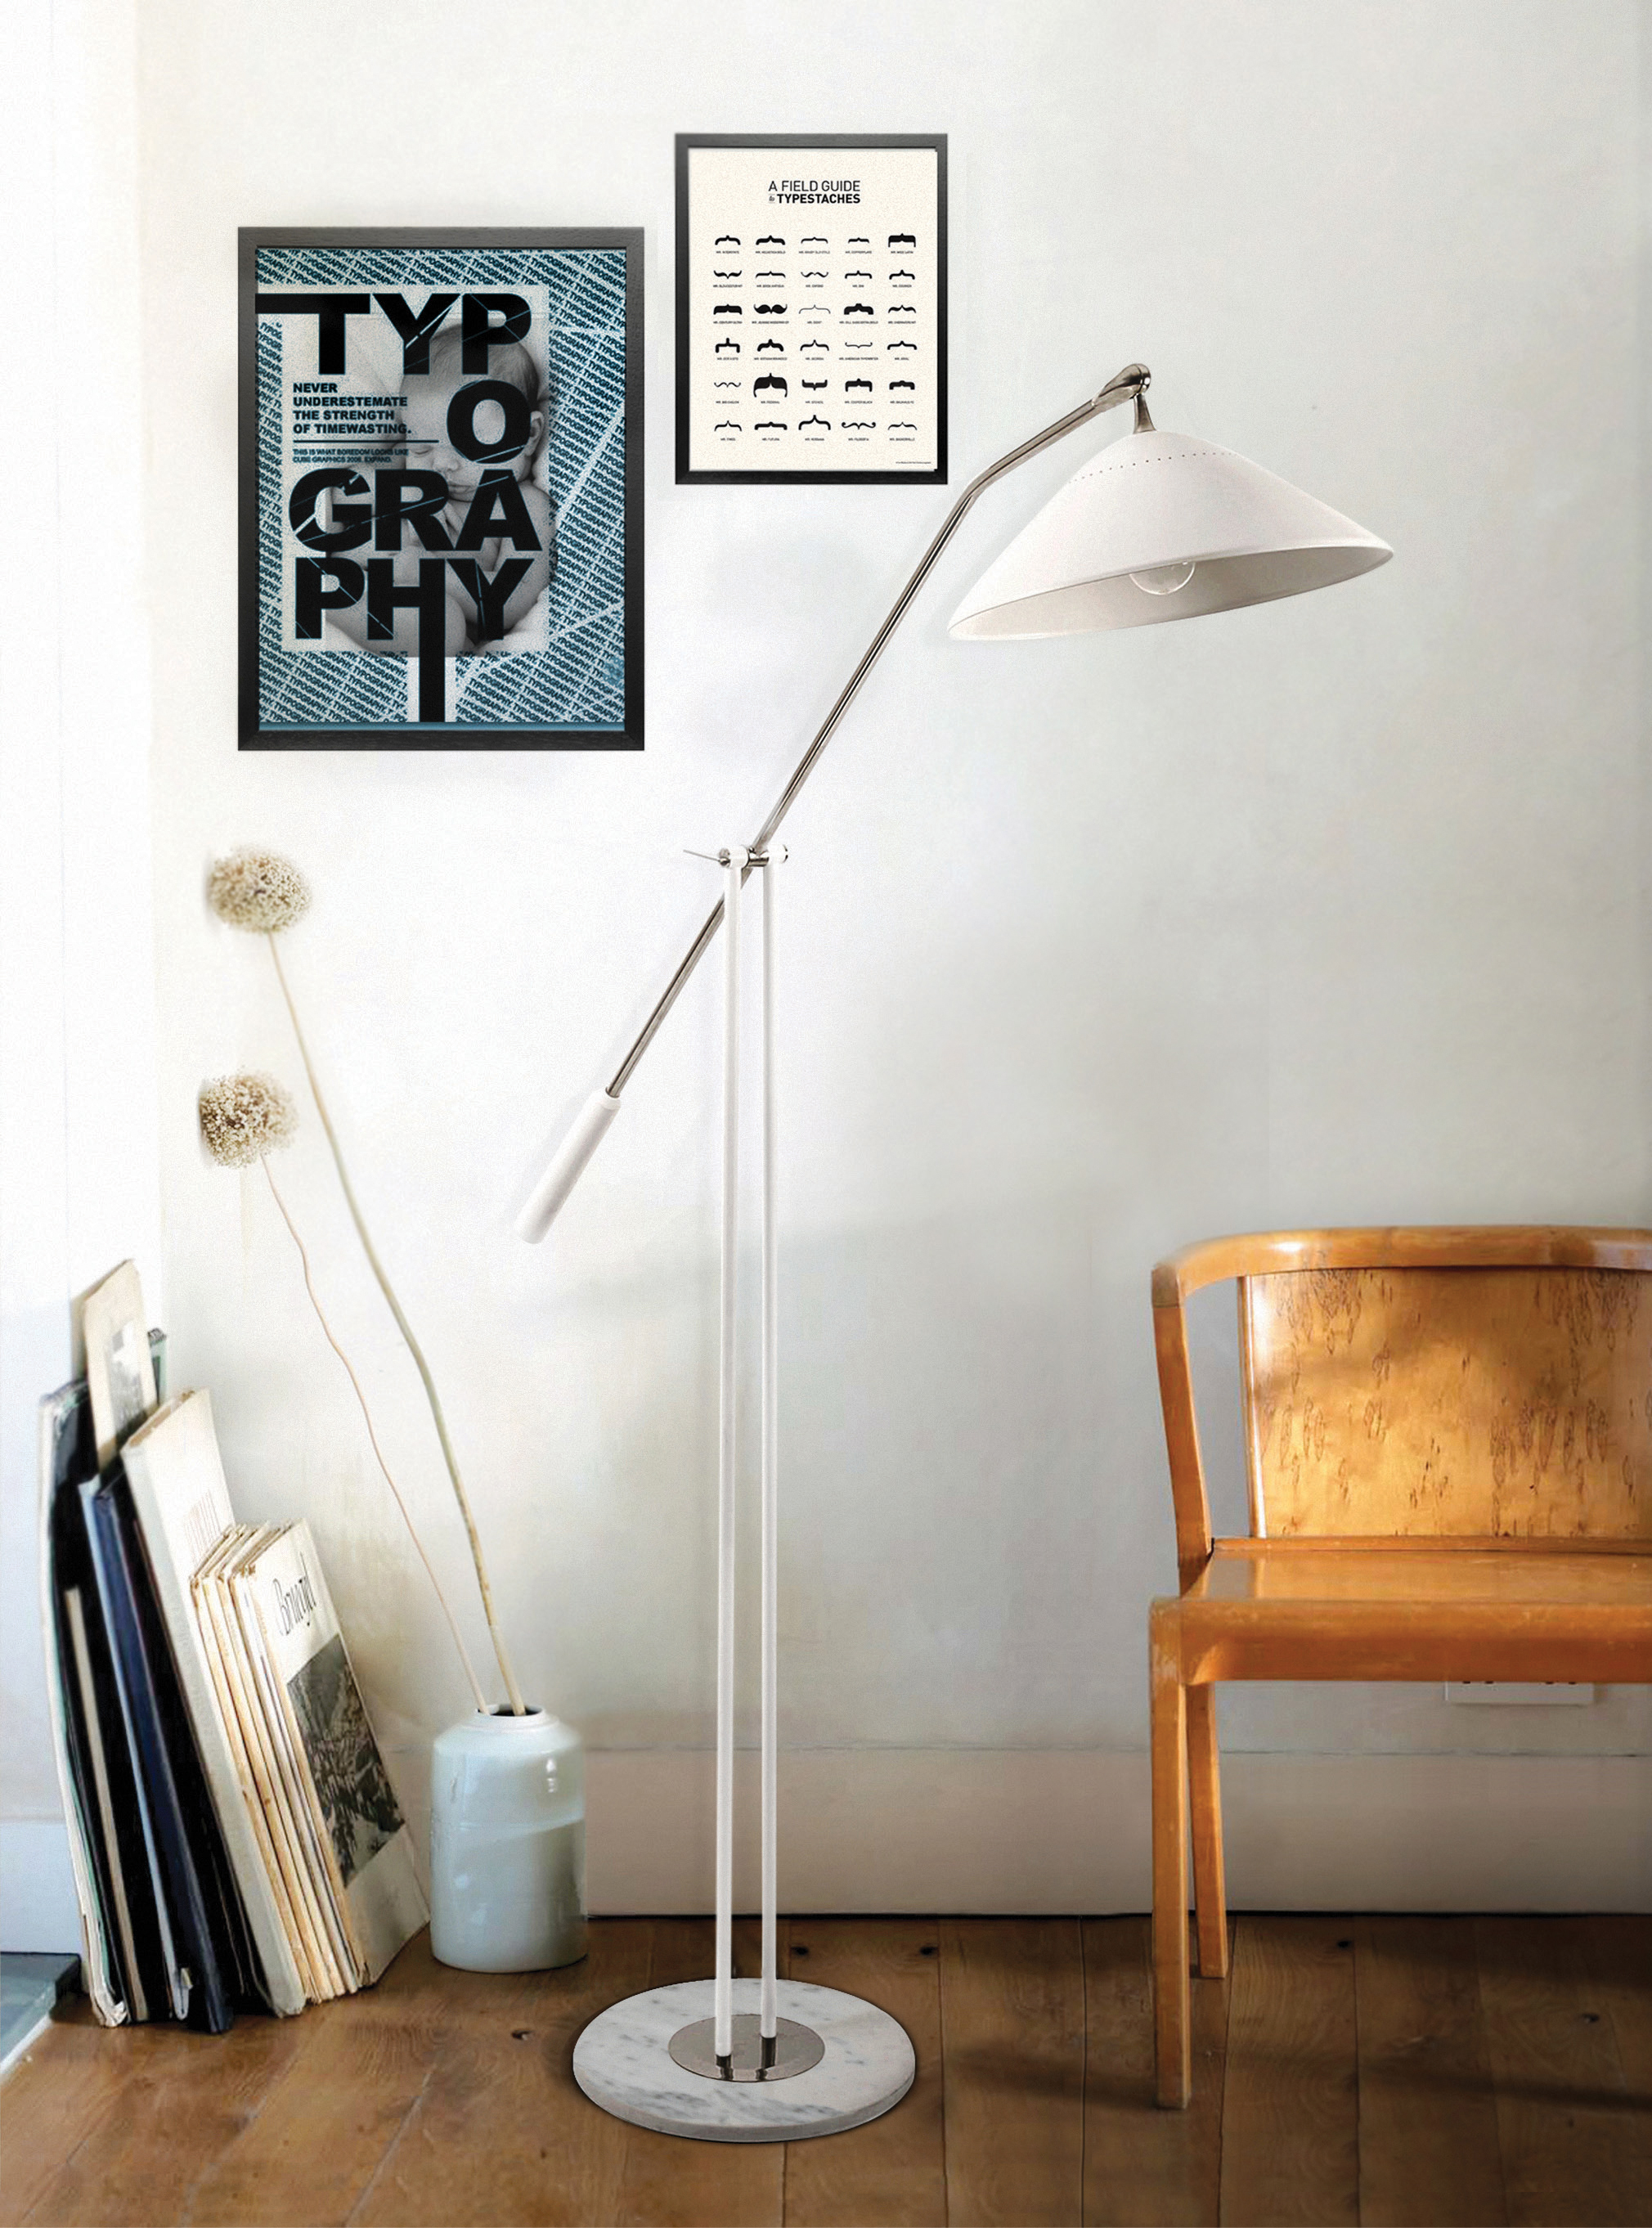 10 Dazzling Modern Floor Lamps You Will Want to Buy 2 modern floor lamps 10 Dazzling Modern Floor Lamps You Will Want to Buy 10 Dazzling Modern Floor Lamps You Will Want to Buy 2